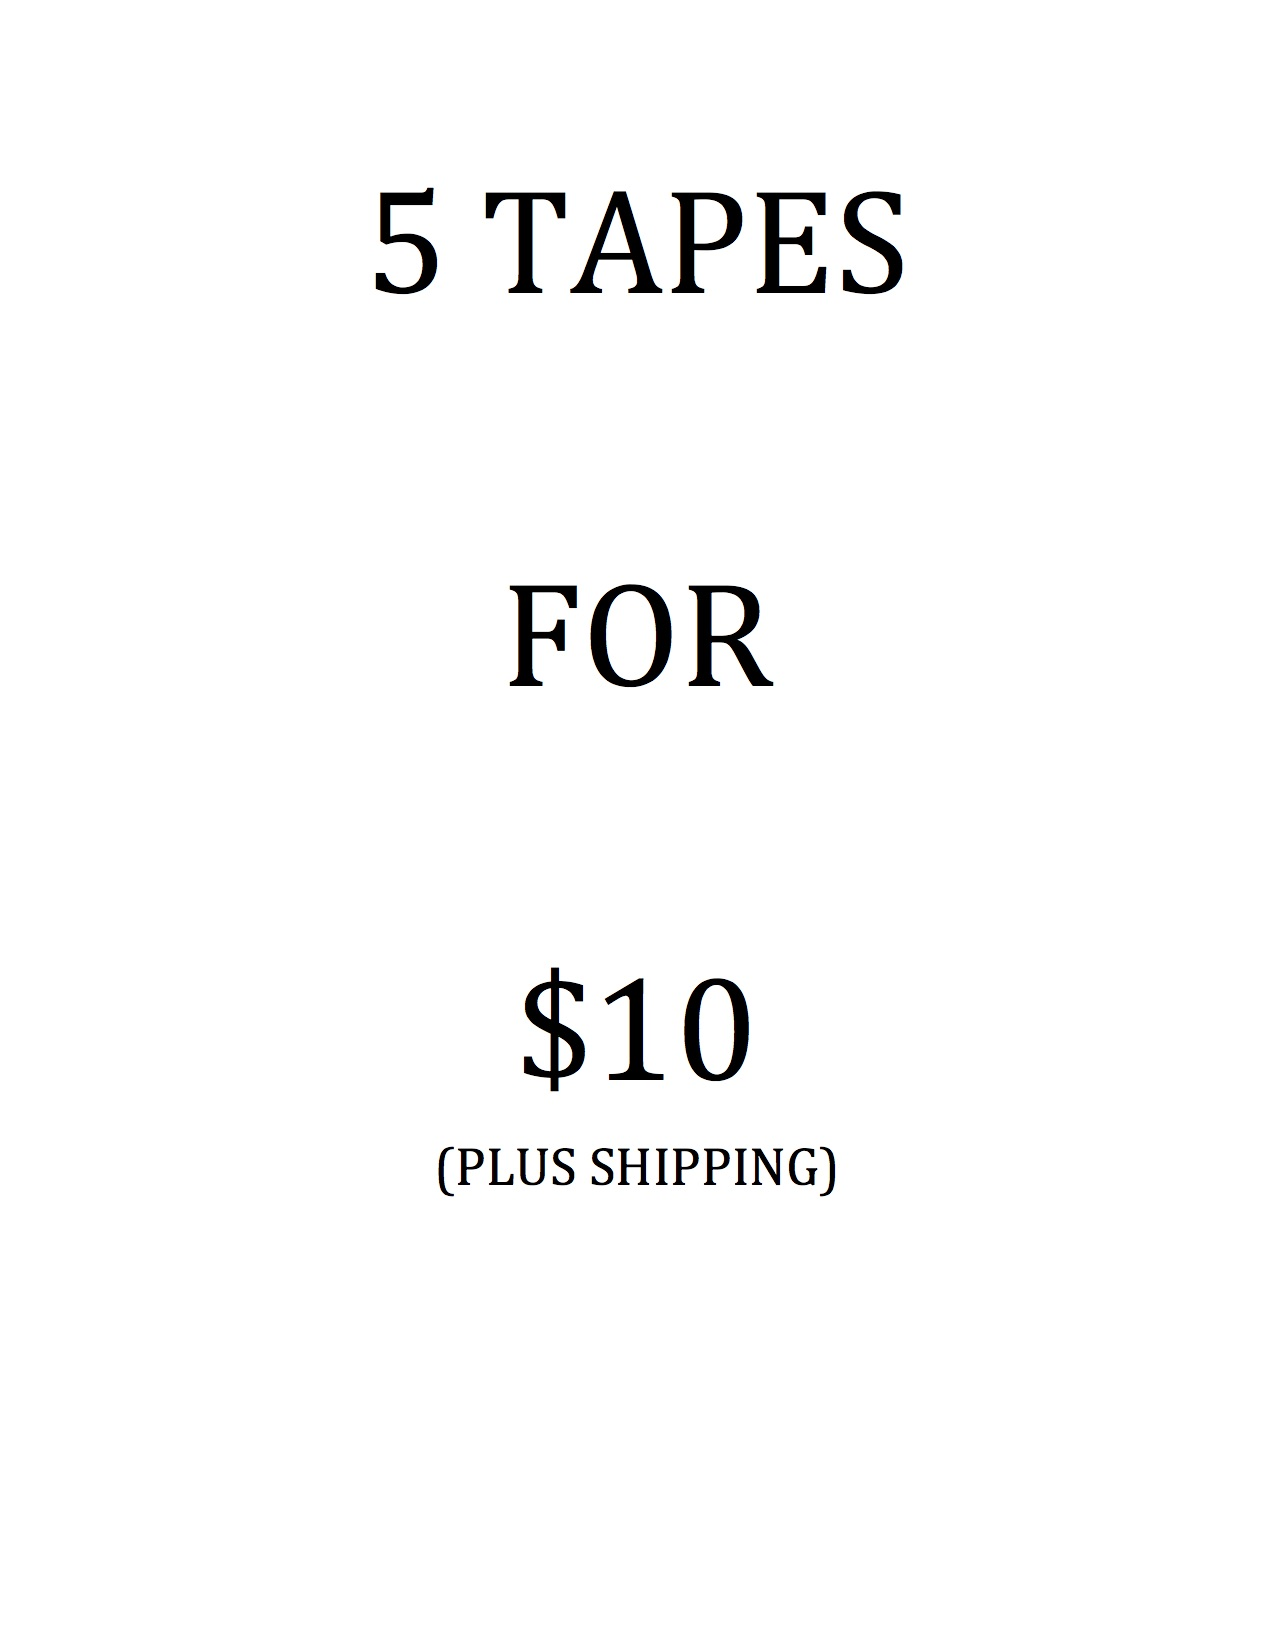 5 tapes for $10 (plus shipping)